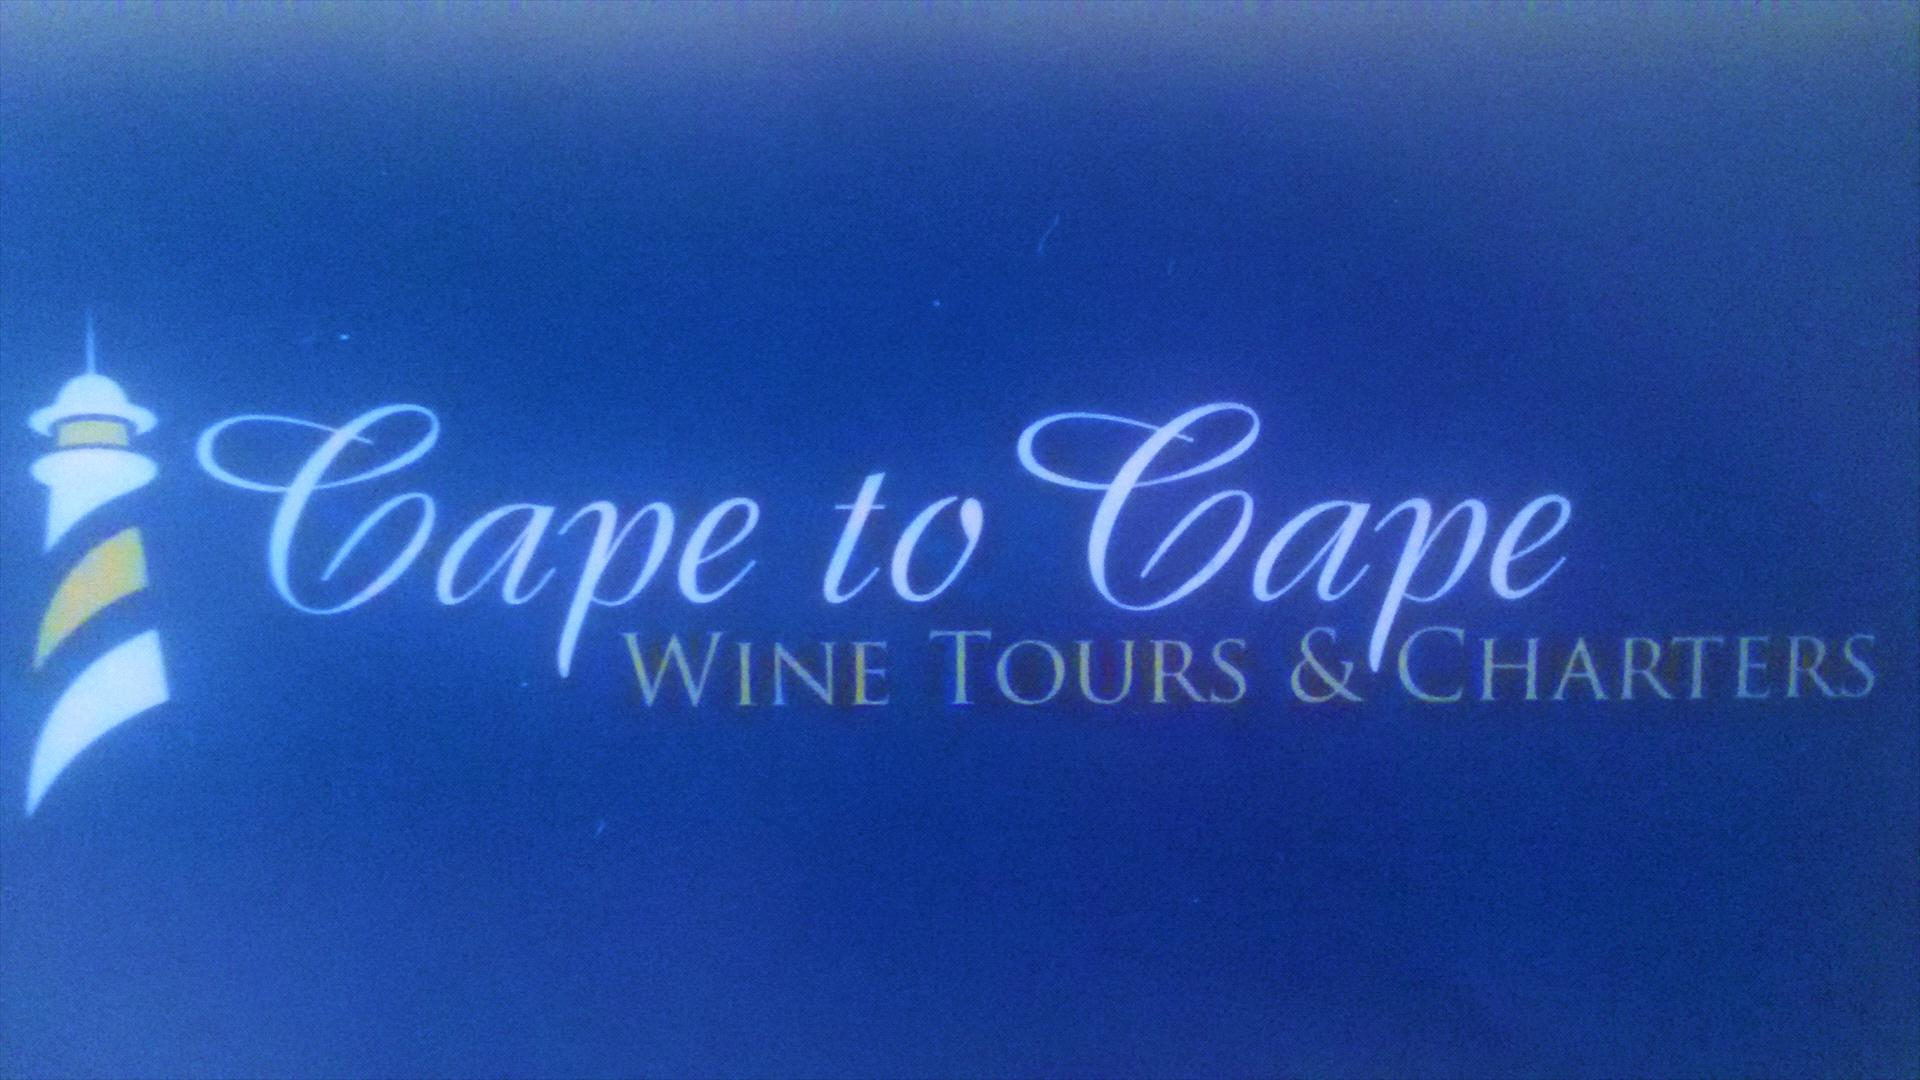 Cape To Cape Wine Tours & Charters logo